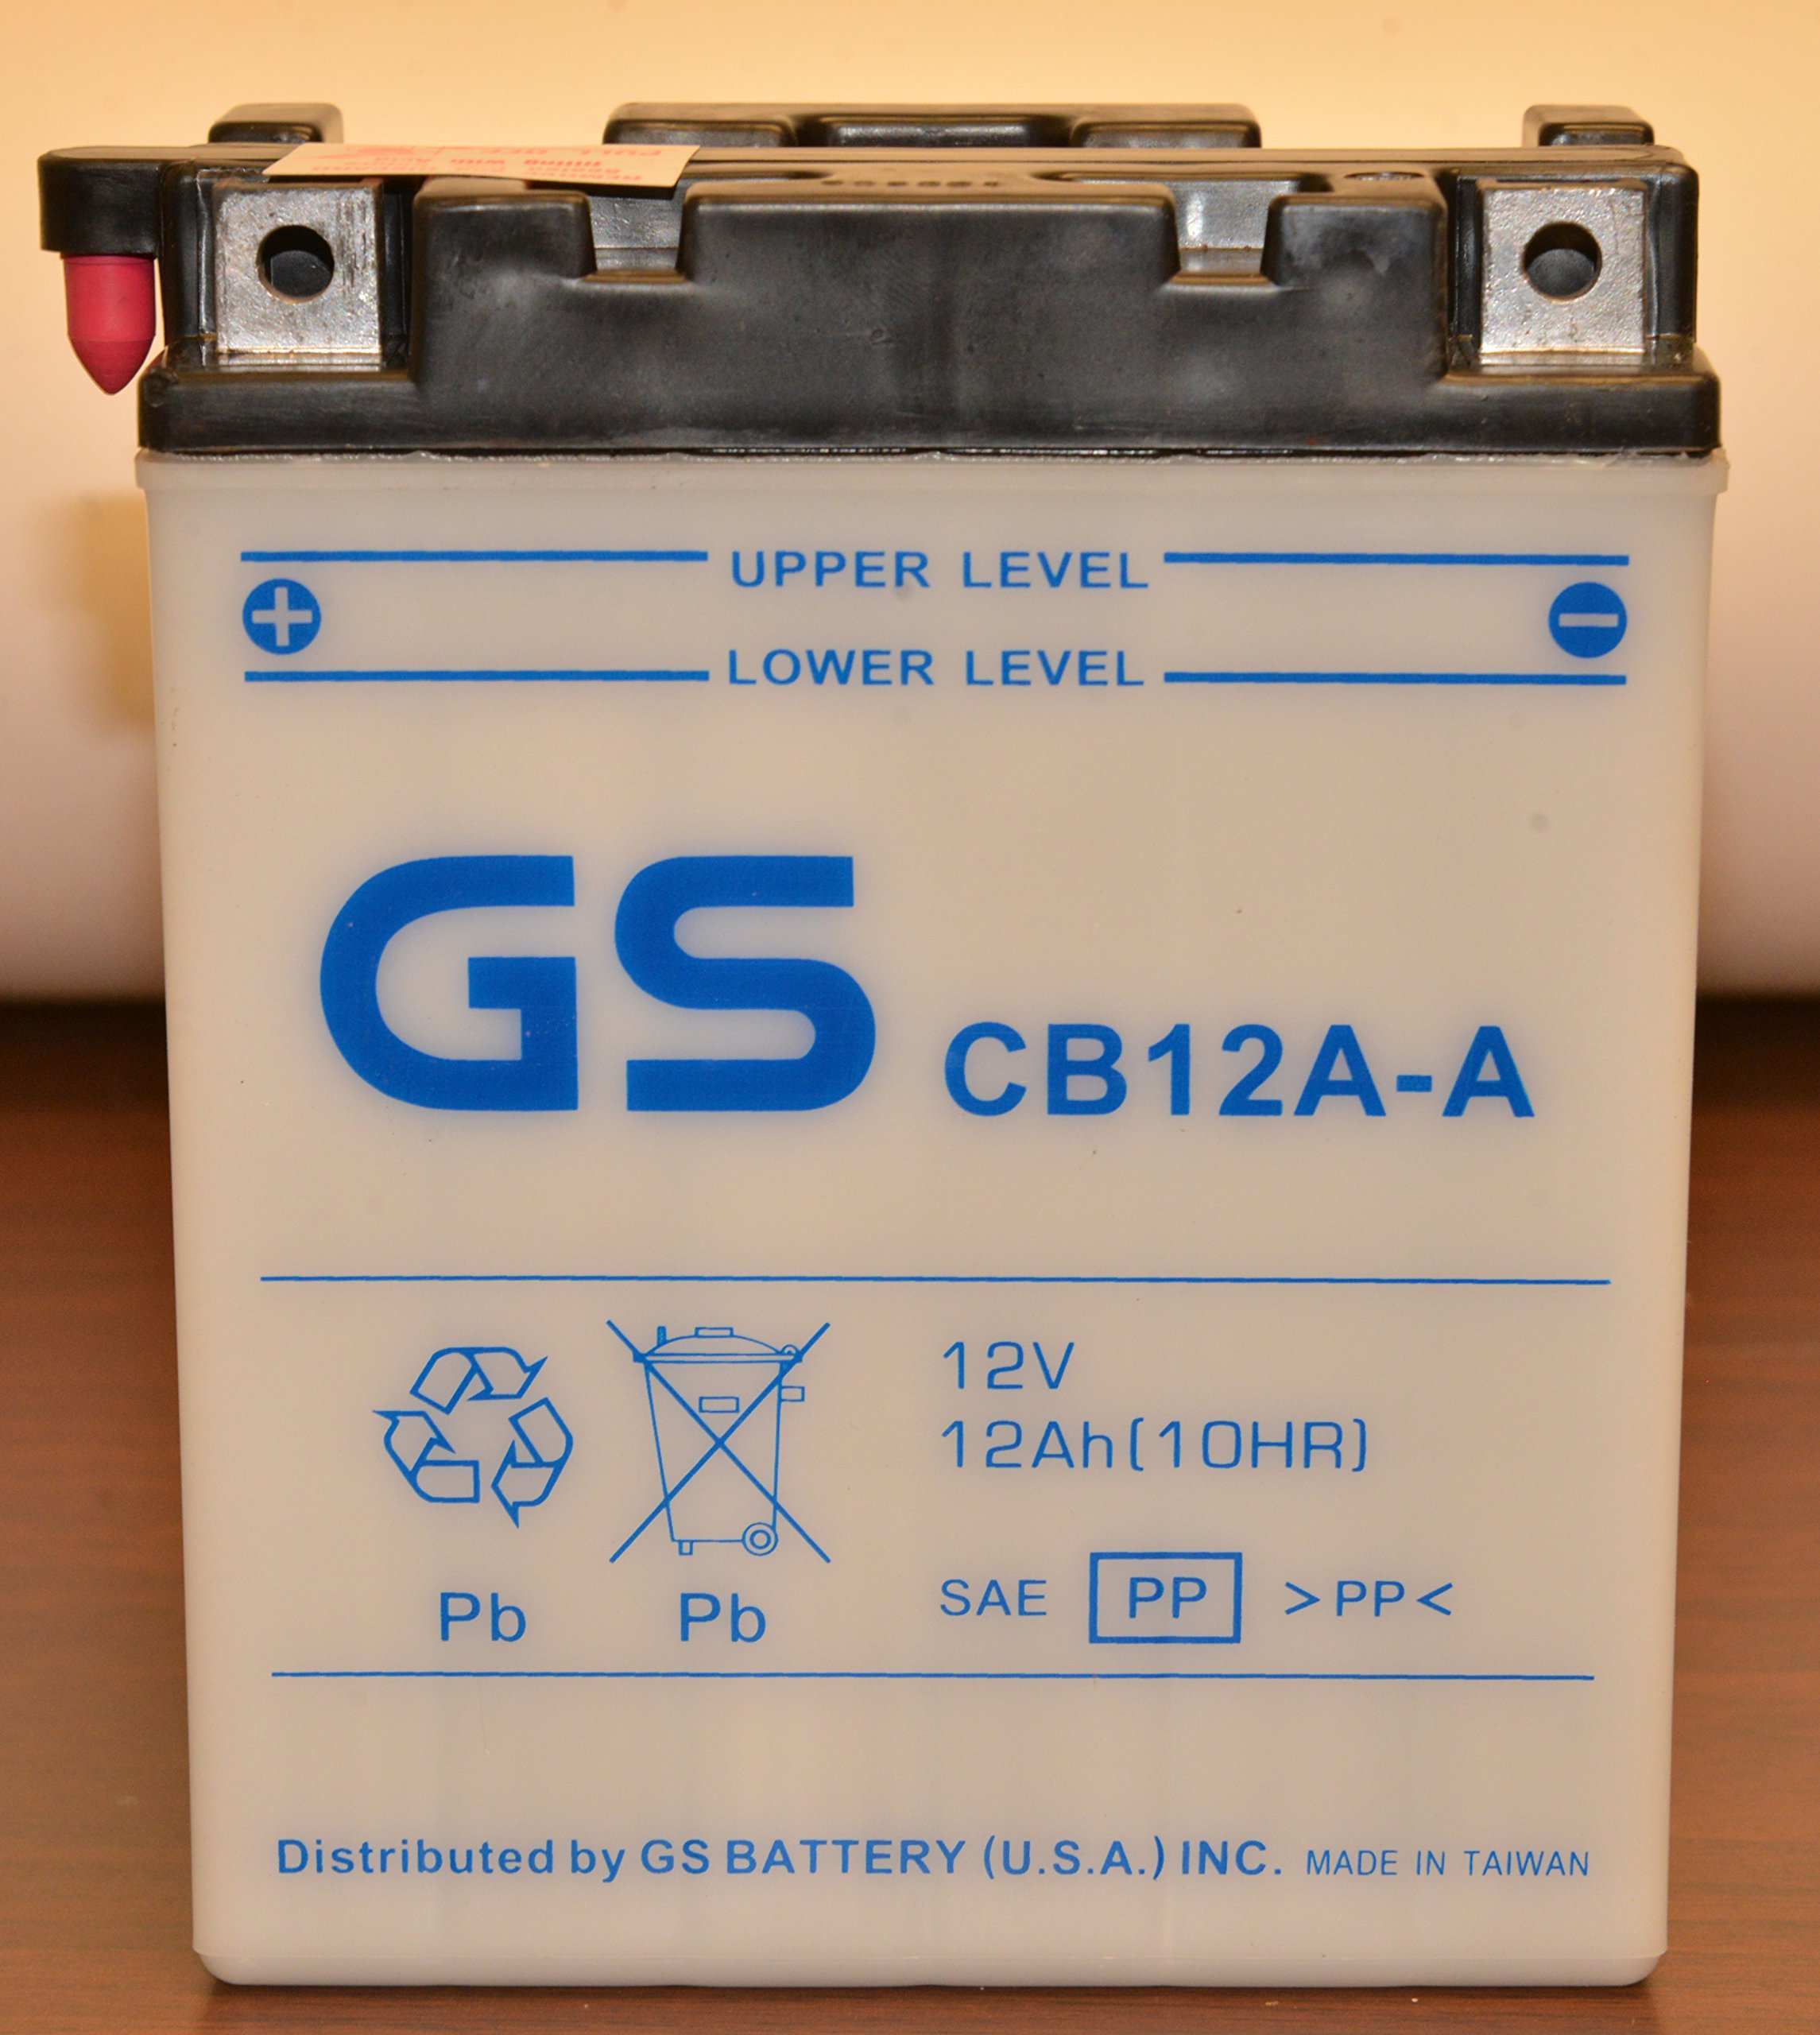 GS BATTERY - GS CB12A-A with Acid Pack – High Performance Powersports Battery for YUASA YB12A-A Replacement, Upgrade for 12N12A-4A-1... Fits ATV, Motorcycle, and Riding Lawn Mower applications